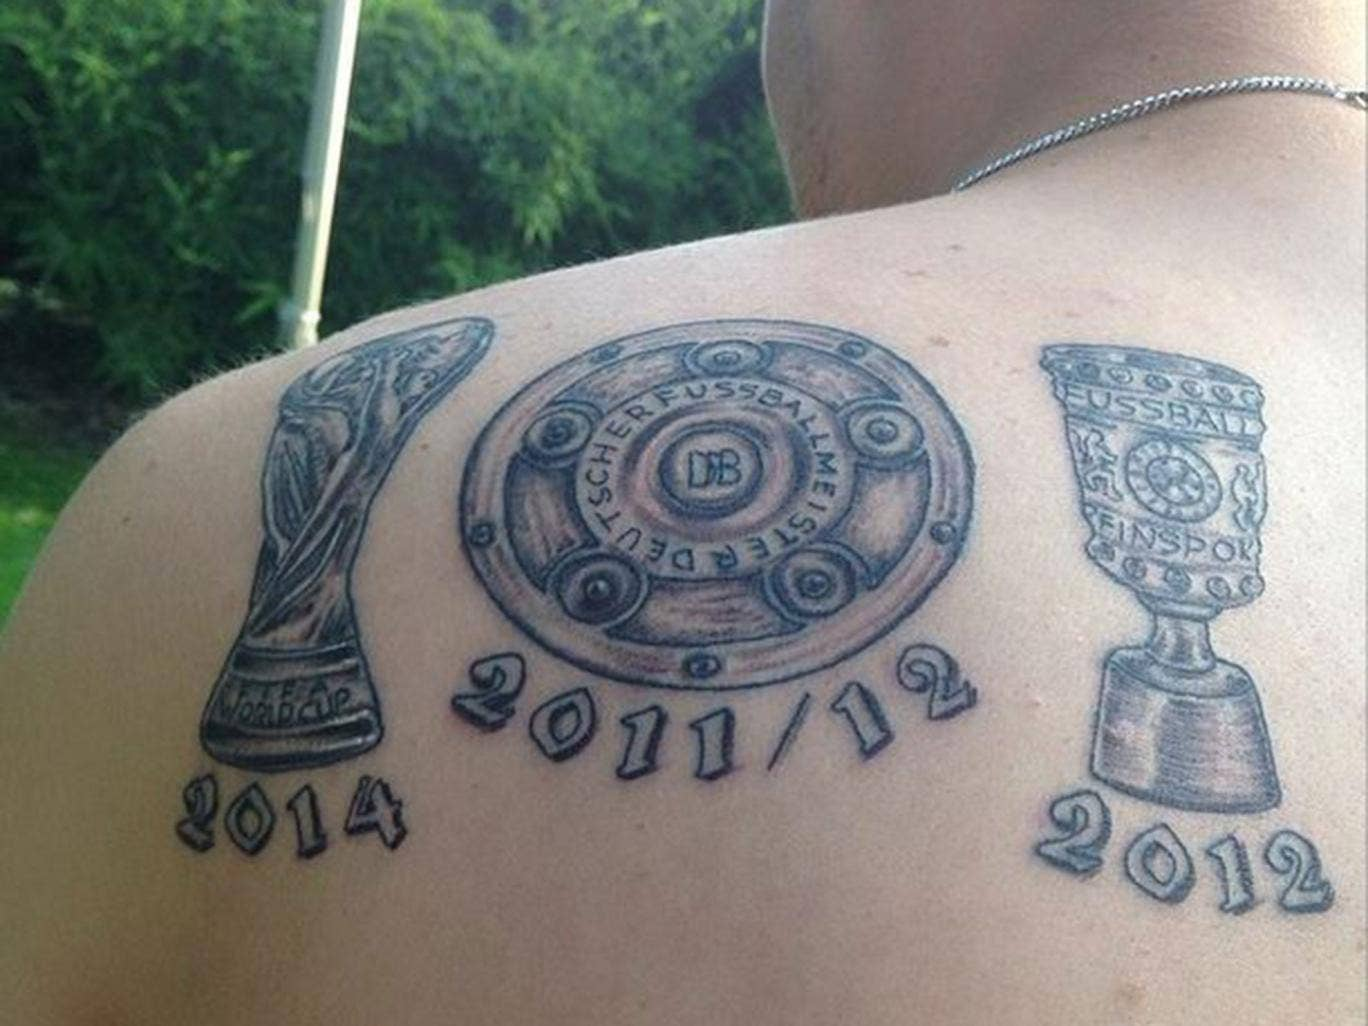 Kevin Grosskreutz shows off his World Cup tattoo even though he didn't play a minute in Brazil